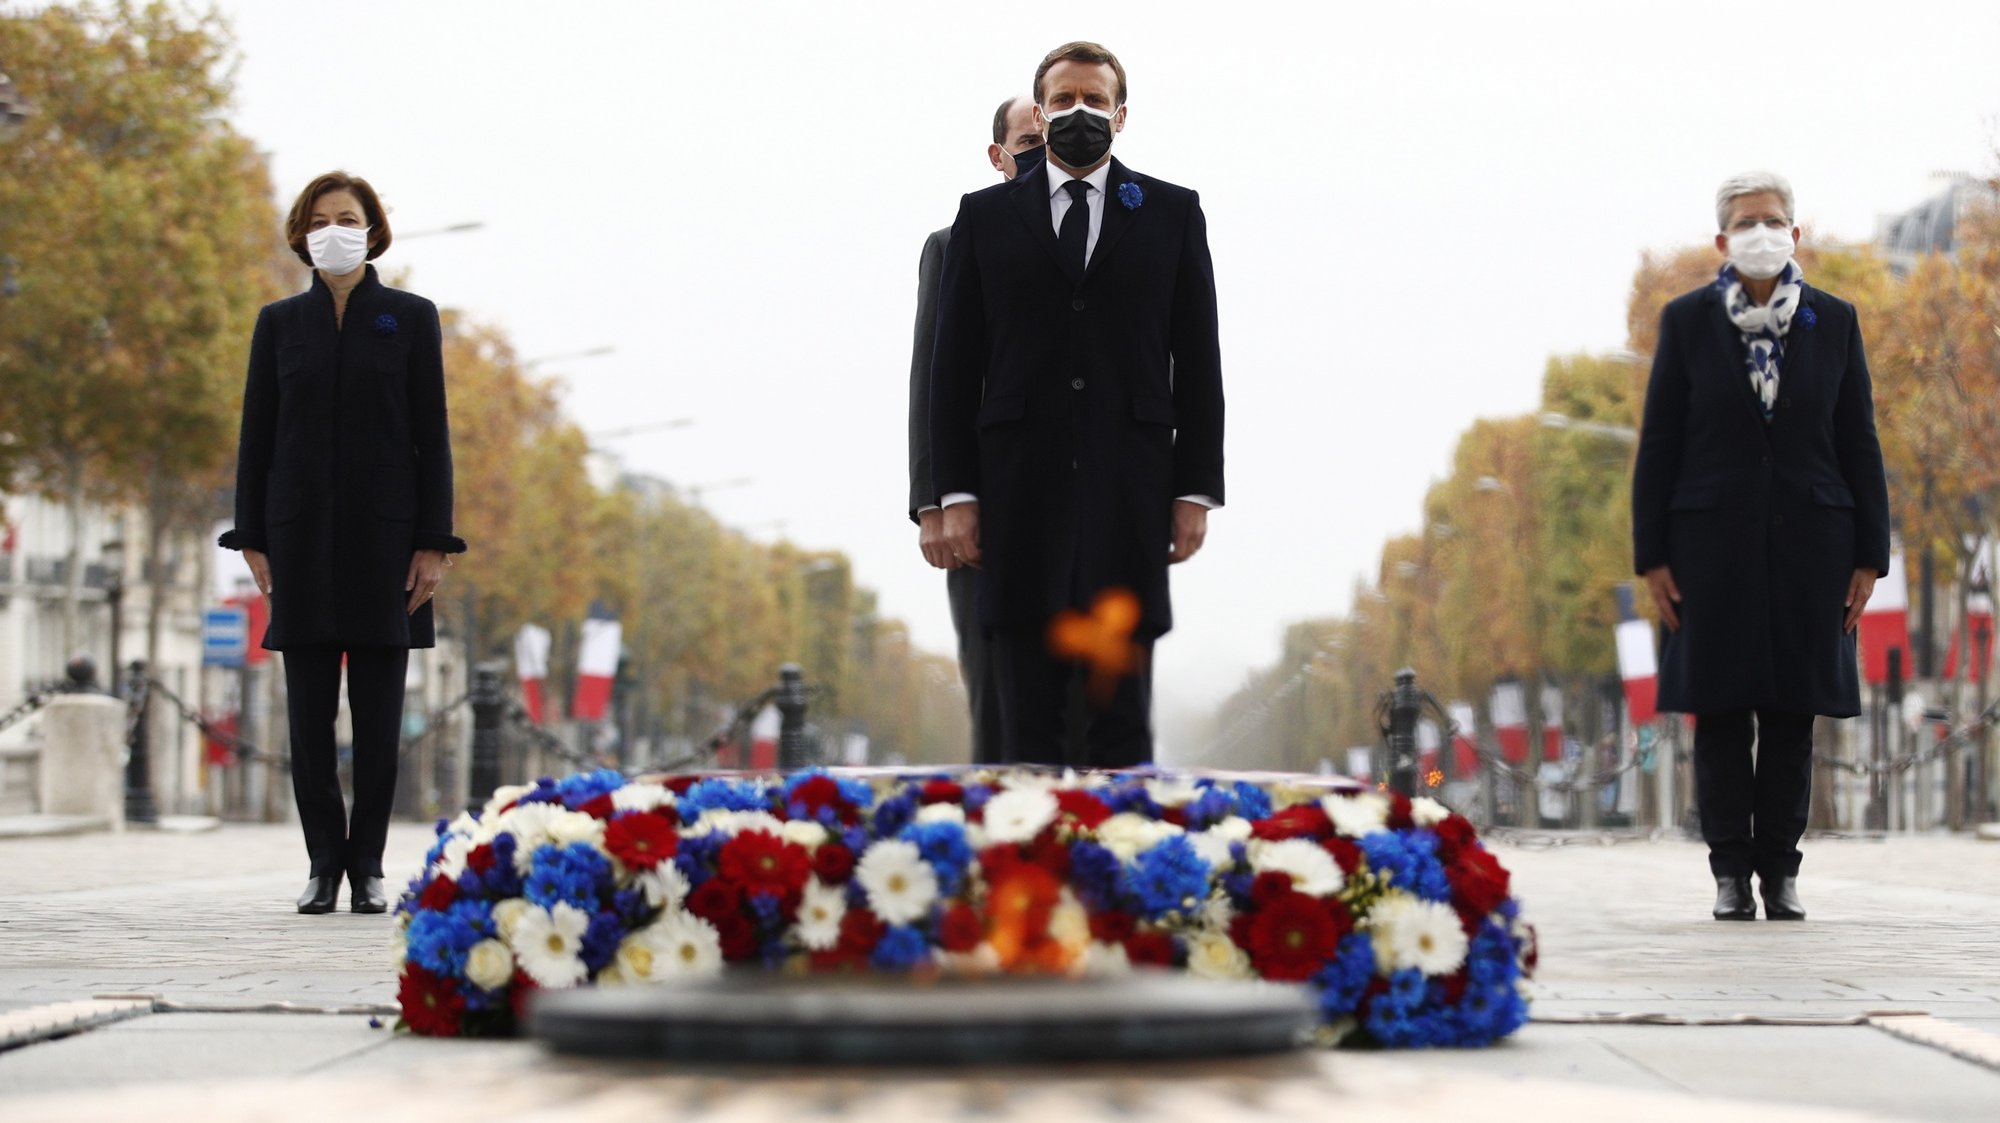 epa08812956 French President Emmanuel Macron (C) pays his repsects as French Prime Minister Jean Castex (rear C), French Junior Defence Minister Genevieve Darrieussecq (R) and French Defence Minister Florence Parly (L) stand behind during a ceremony at the Arc de Triomphe in Paris, France, 11 November 2020, as part of the commemorations marking the 102nd anniversary of the 11 November 1918 armistice, ending World War I (WWI).  EPA/YOAN VALAT / POOL